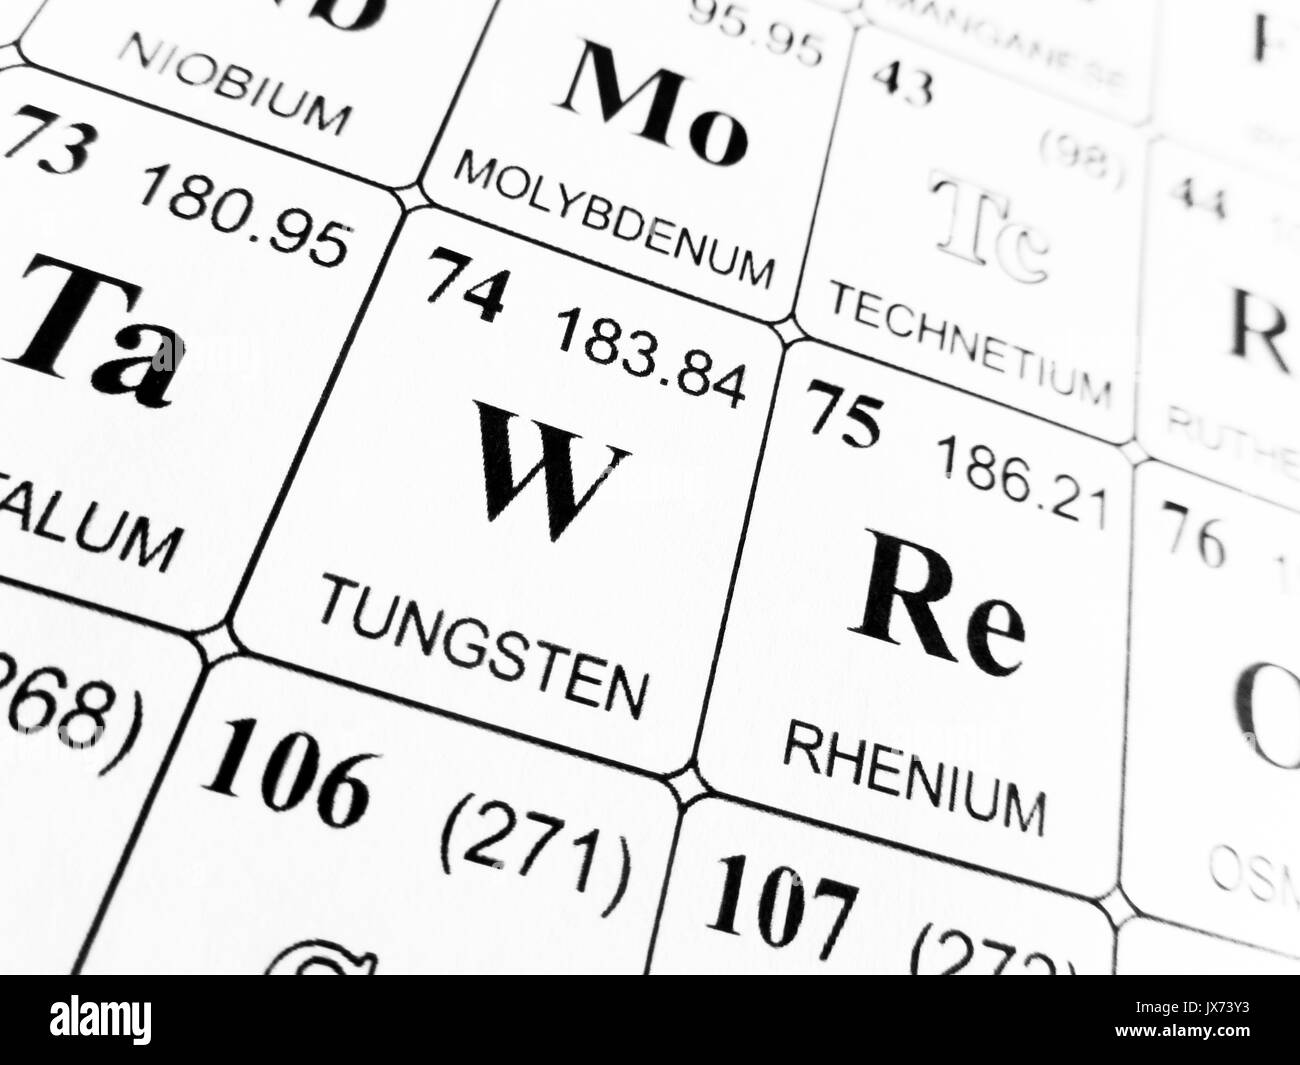 What is tungsten on the periodic table image collections tungsten on the periodic table of the elements stock photo stock photo tungsten on the periodic gamestrikefo Gallery